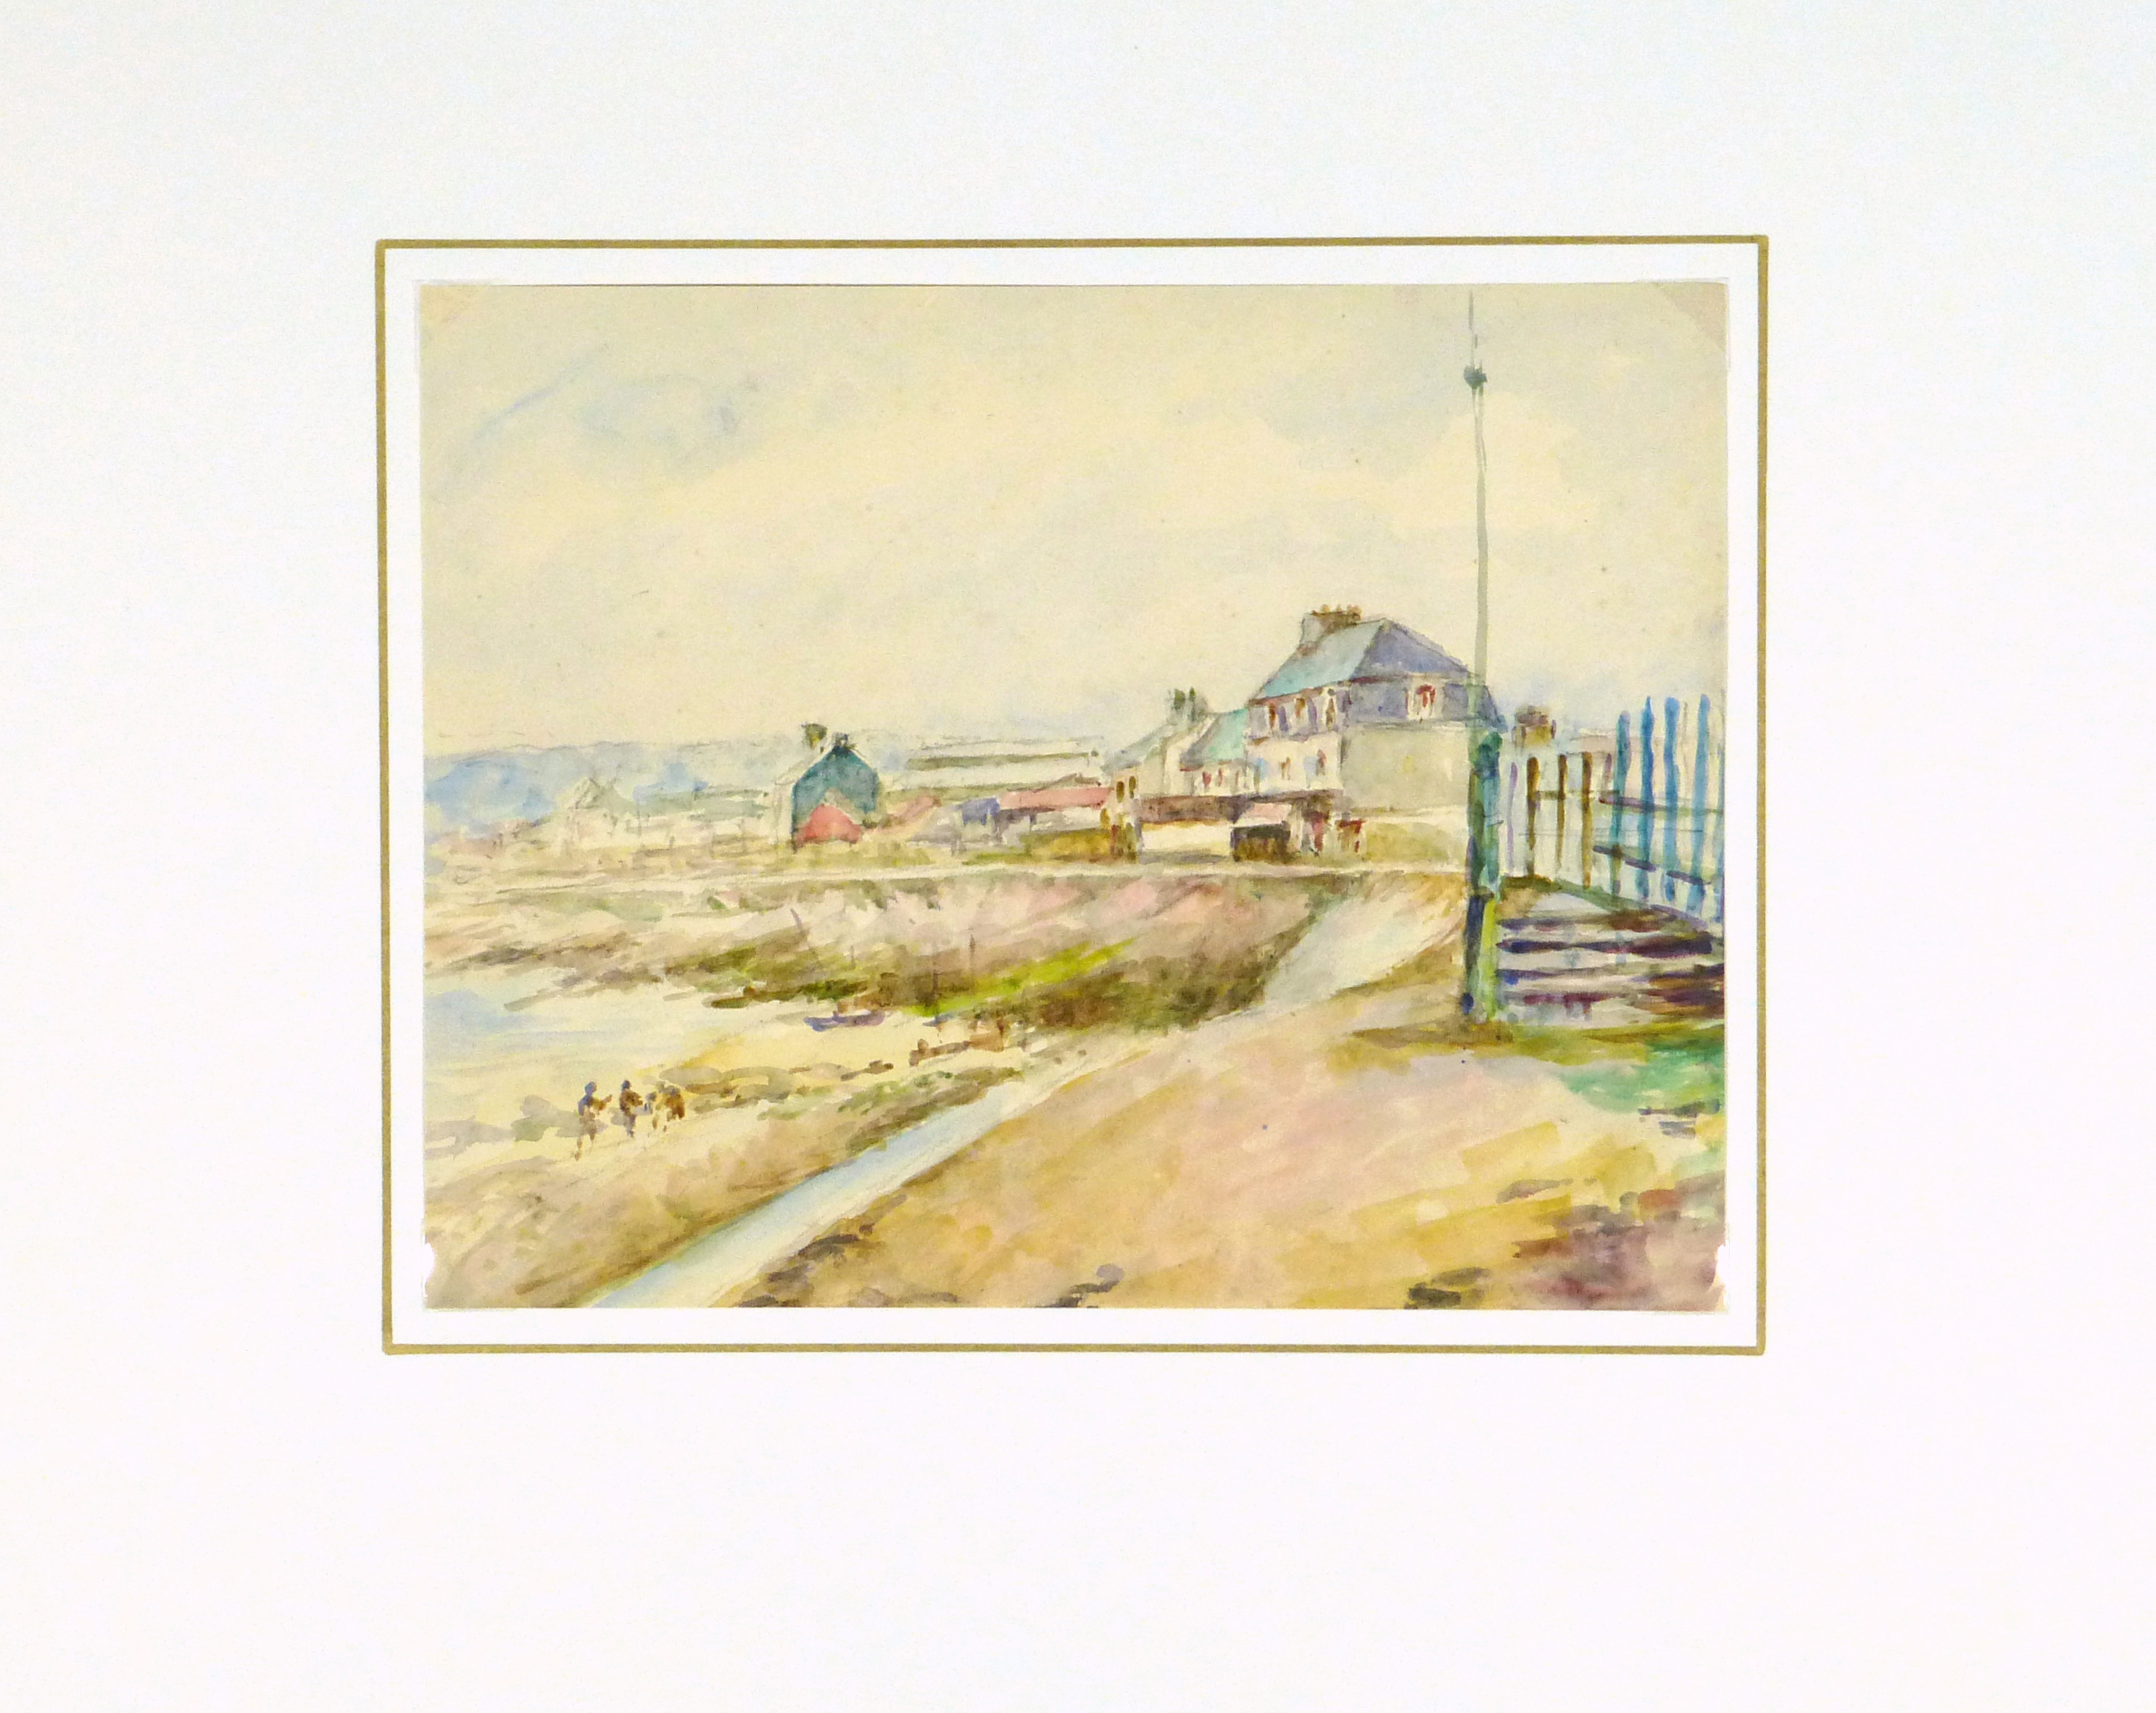 Watercolor Landscape - Beachside Town, Circa 1930-matted-8894K